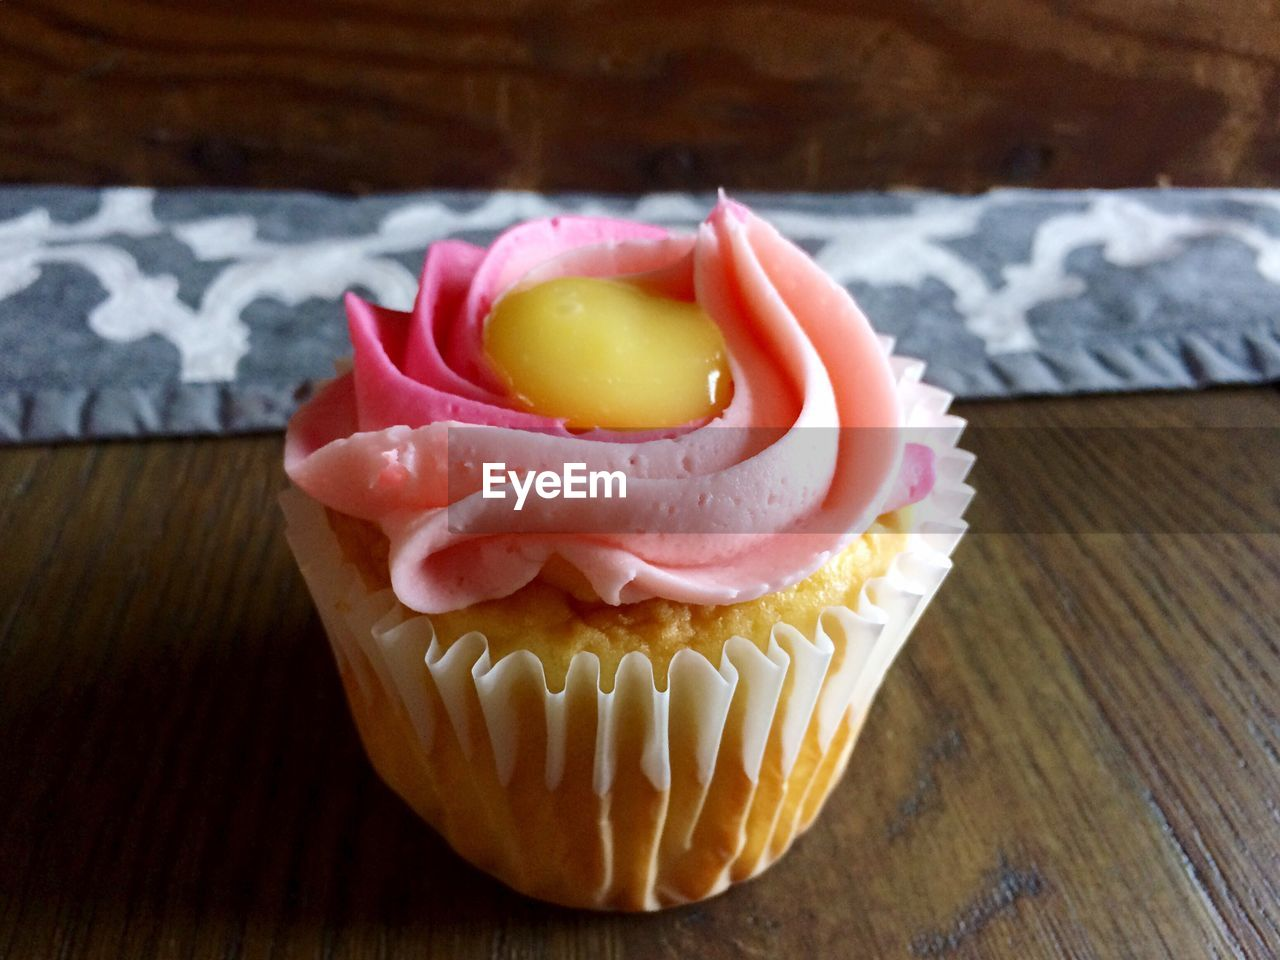 food, table, freshness, food and drink, indoors, still life, close-up, cupcake, no people, sweet food, cake, ready-to-eat, pink color, indulgence, focus on foreground, baked, sweet, dessert, wood - material, unhealthy eating, temptation, cupcake holder, snack